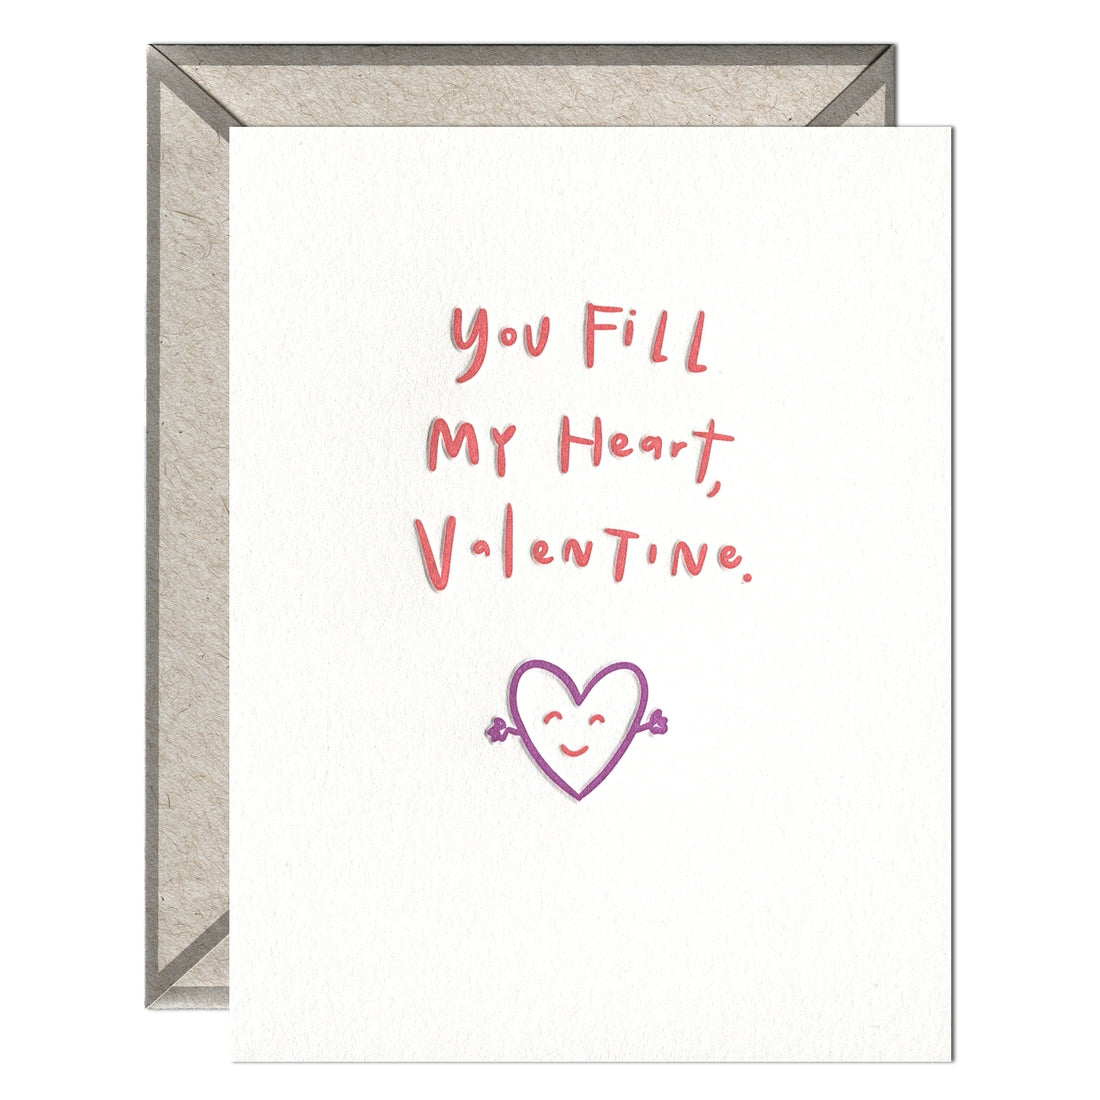 Fill My Heart Valentine Card